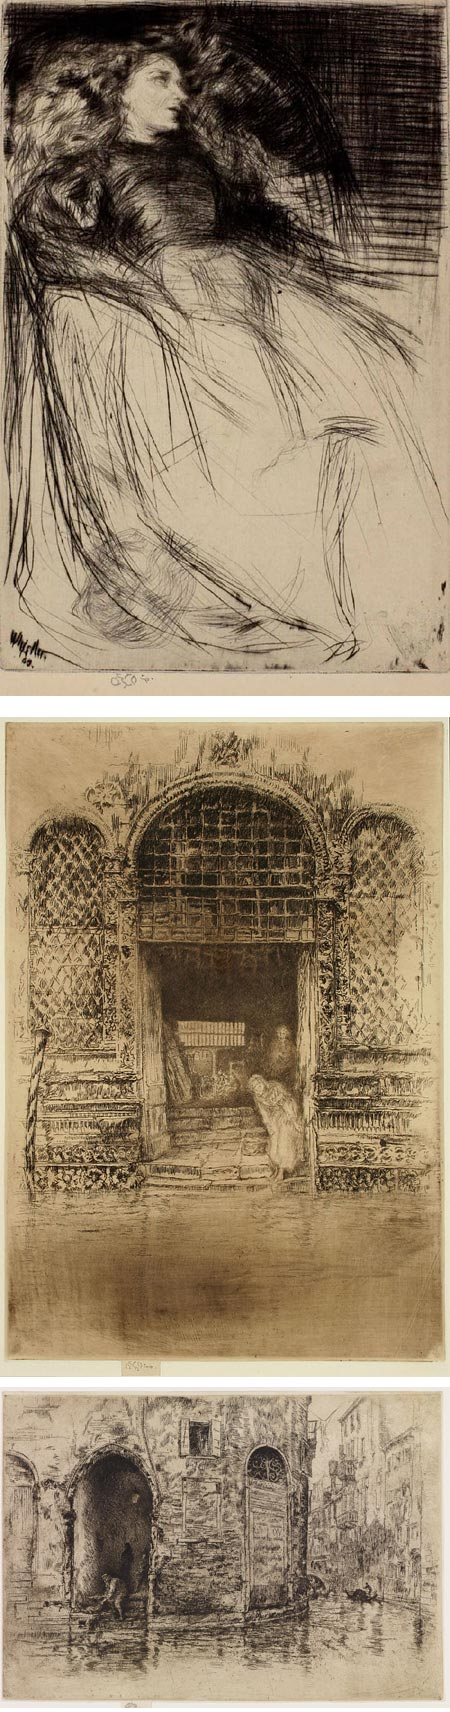 On Beauty and the Everyday: The Prints of James McNeill Whistler